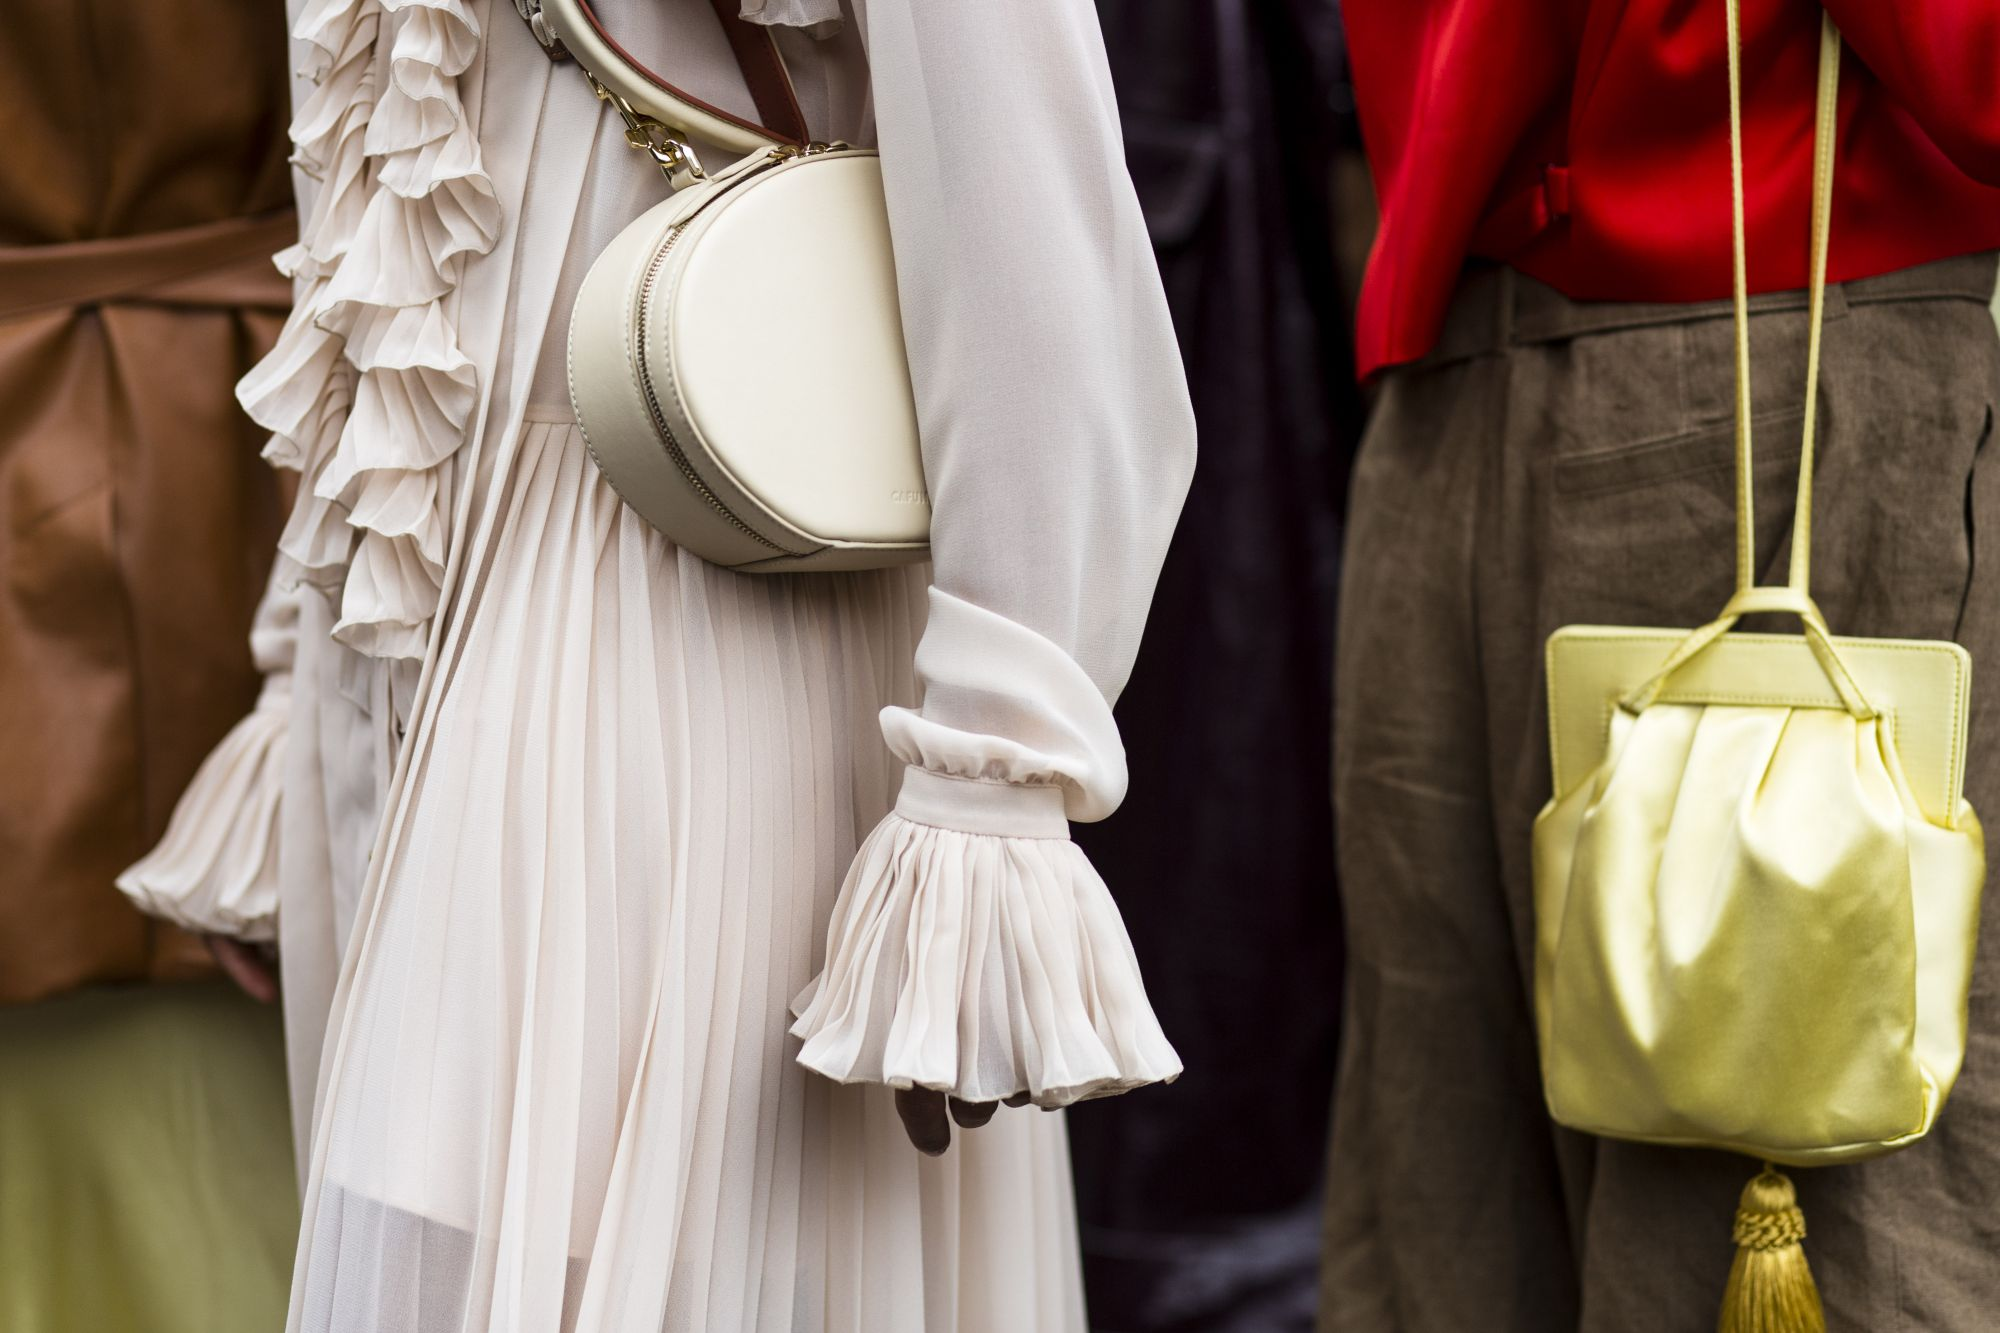 Trending: 10 Designer Accessories You Need This Fall